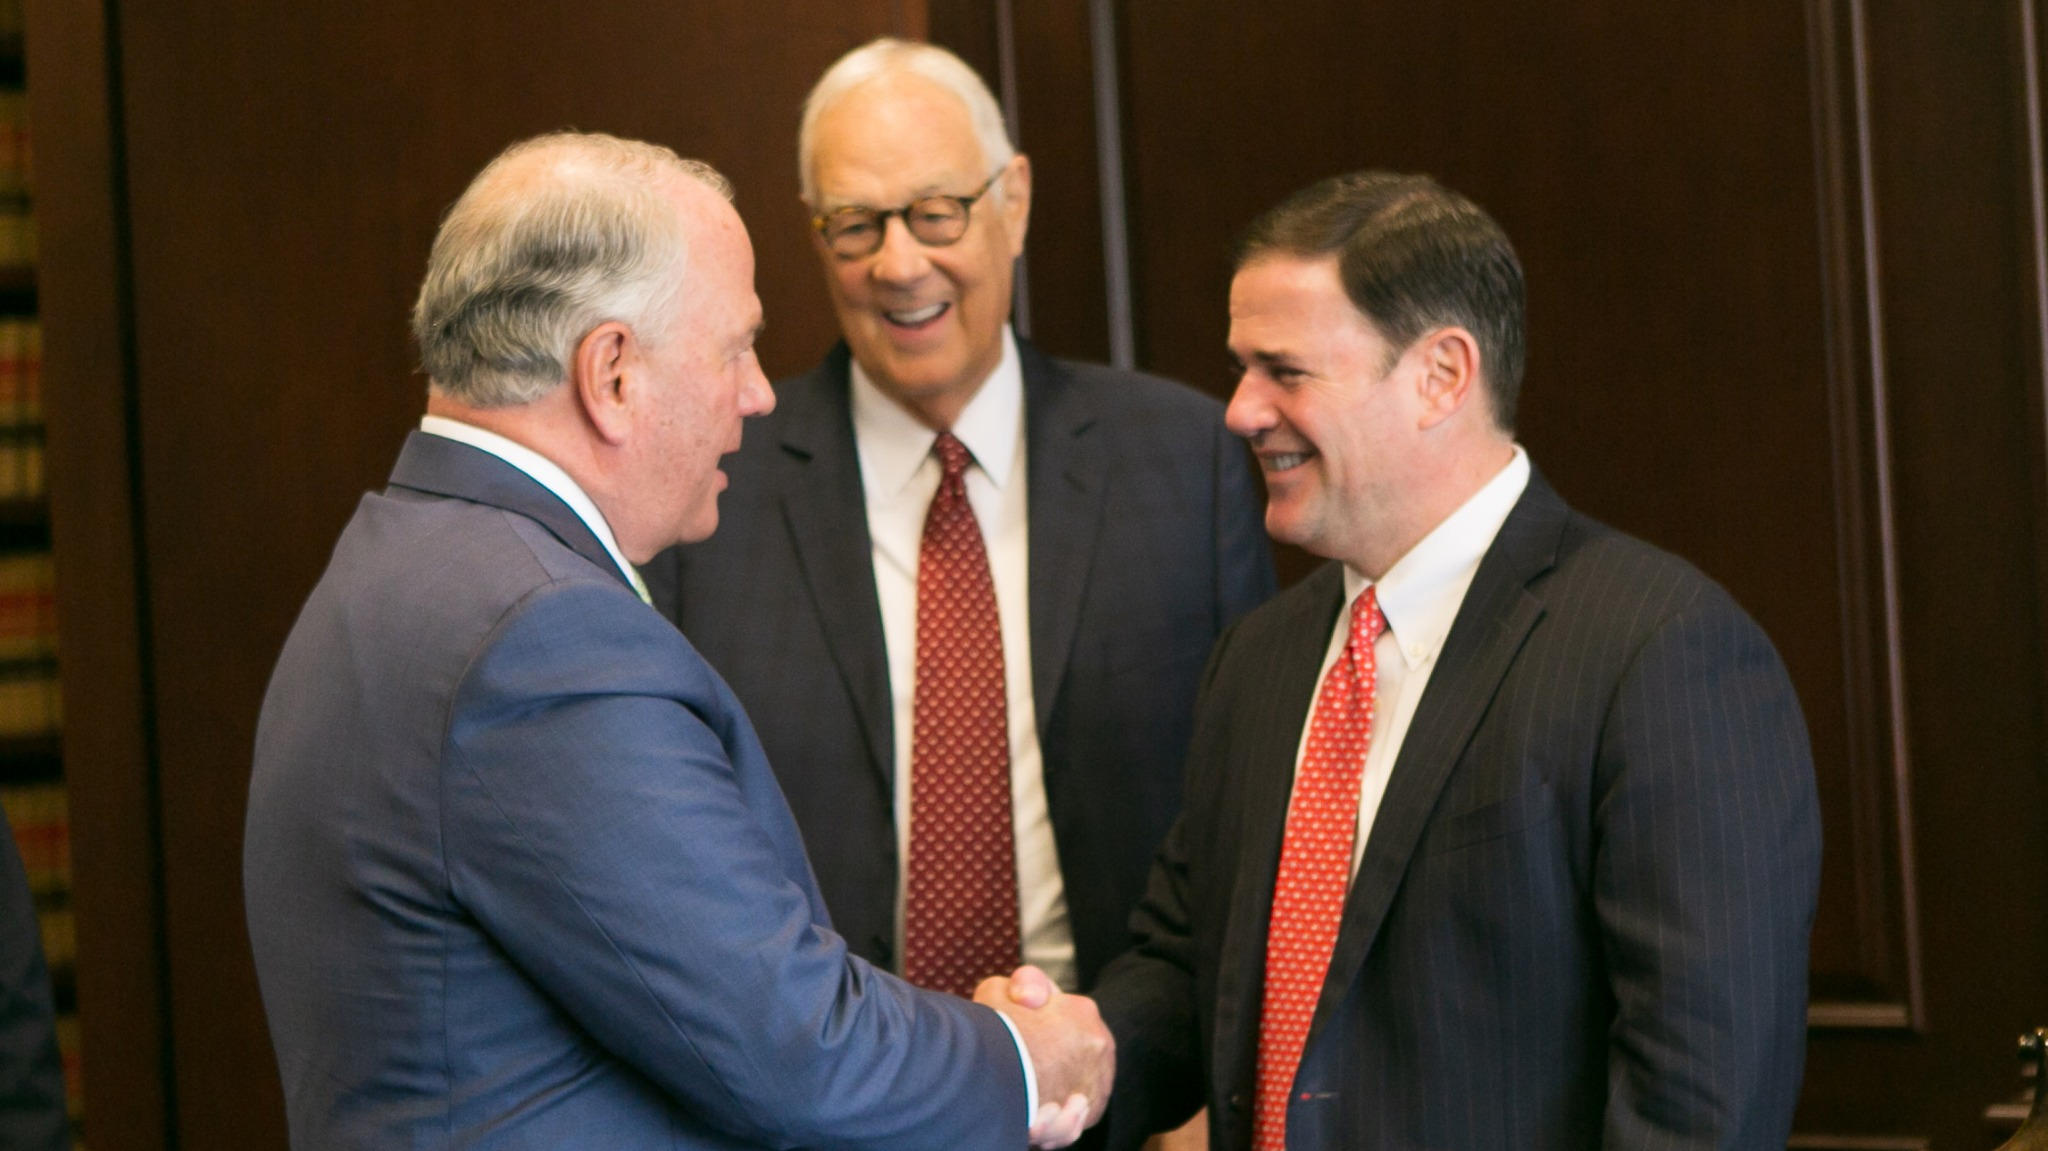 Elder Ronald A. Rasband of the Quorum of the Twelve Apostles meets with Arizona Governor Doug Ducey on Friday, October 18, 2019.